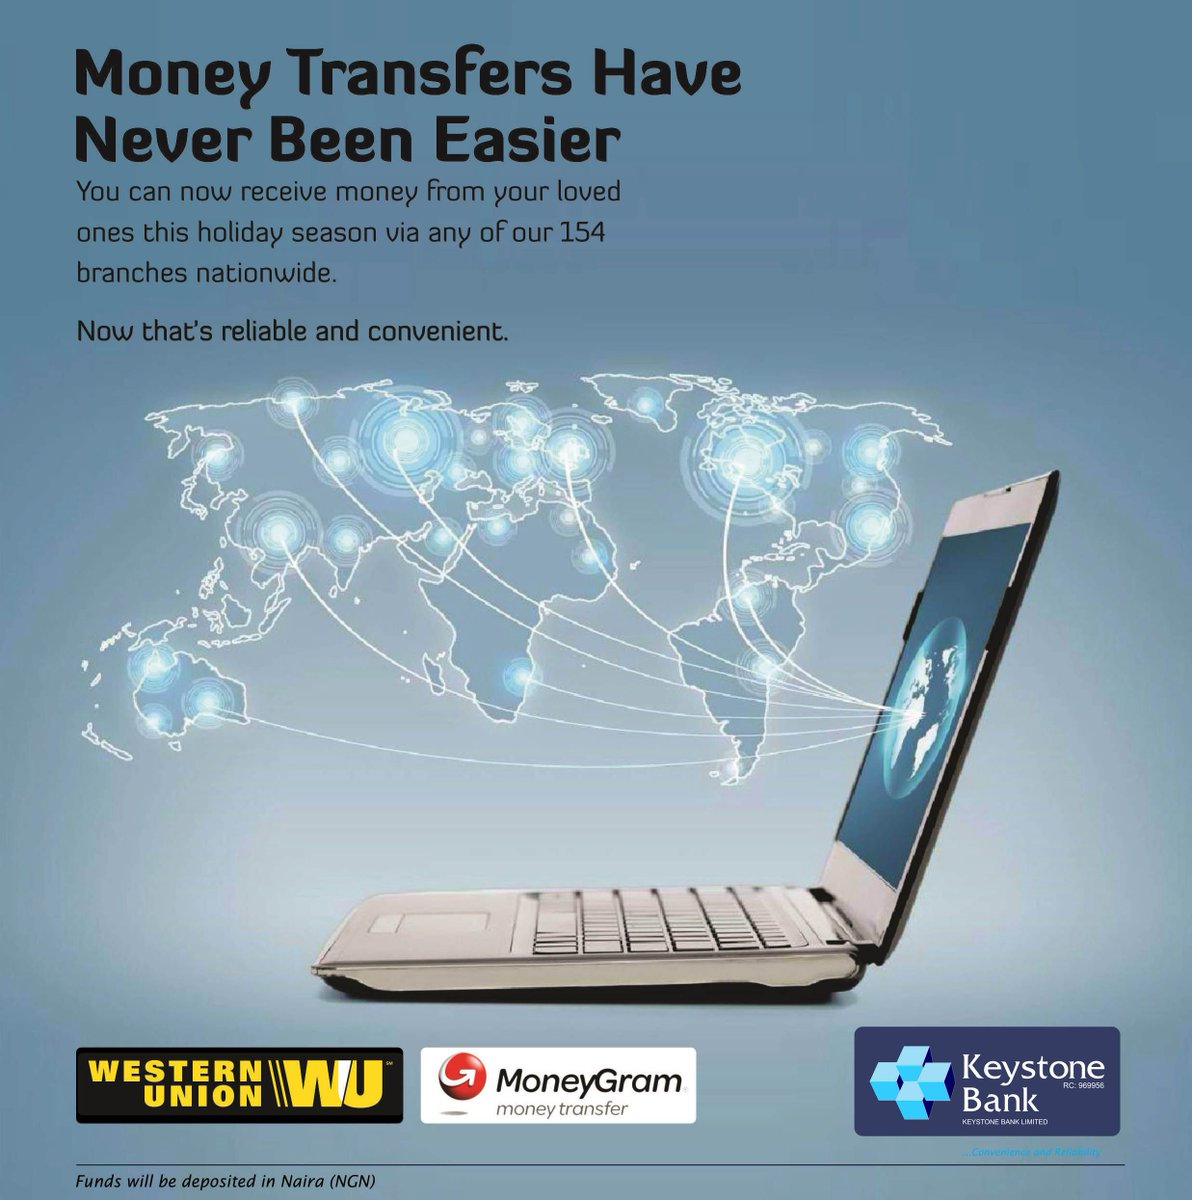 Keystone Bank On Twitter Money Transfer Have Never Been This Easy You Can Now Receive From Your Loved Ones Holiday Season Via Any Of Our 154